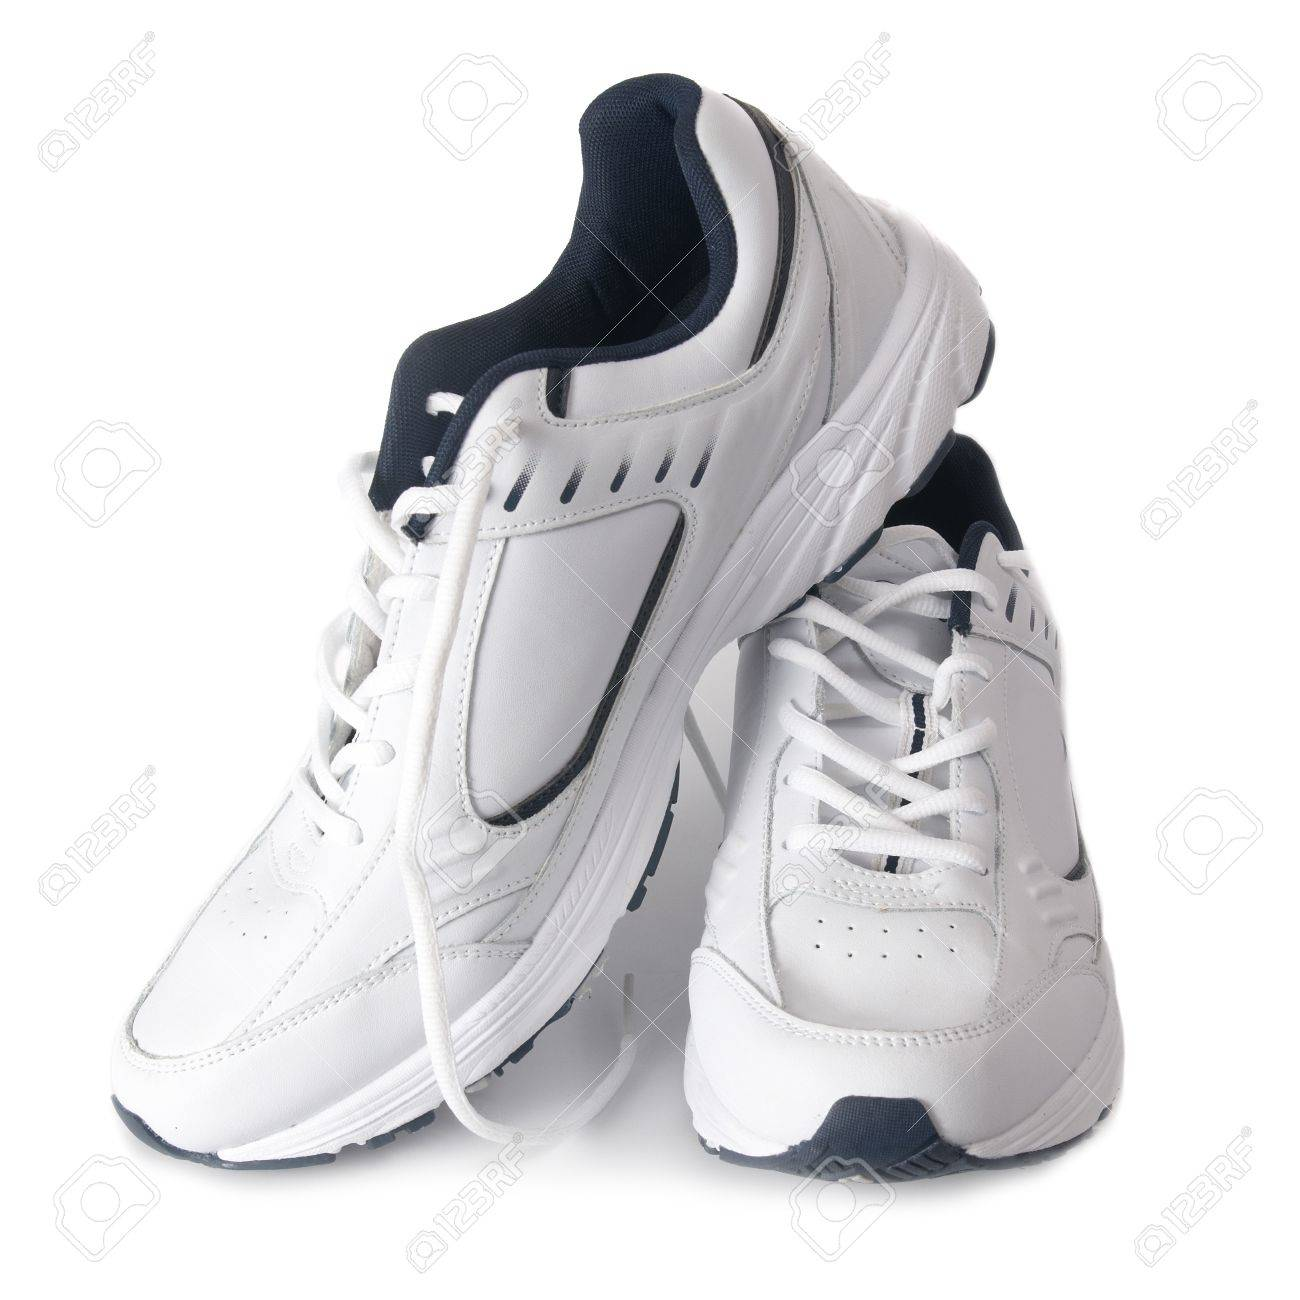 Pair white of trainers on isolated background - 10492460